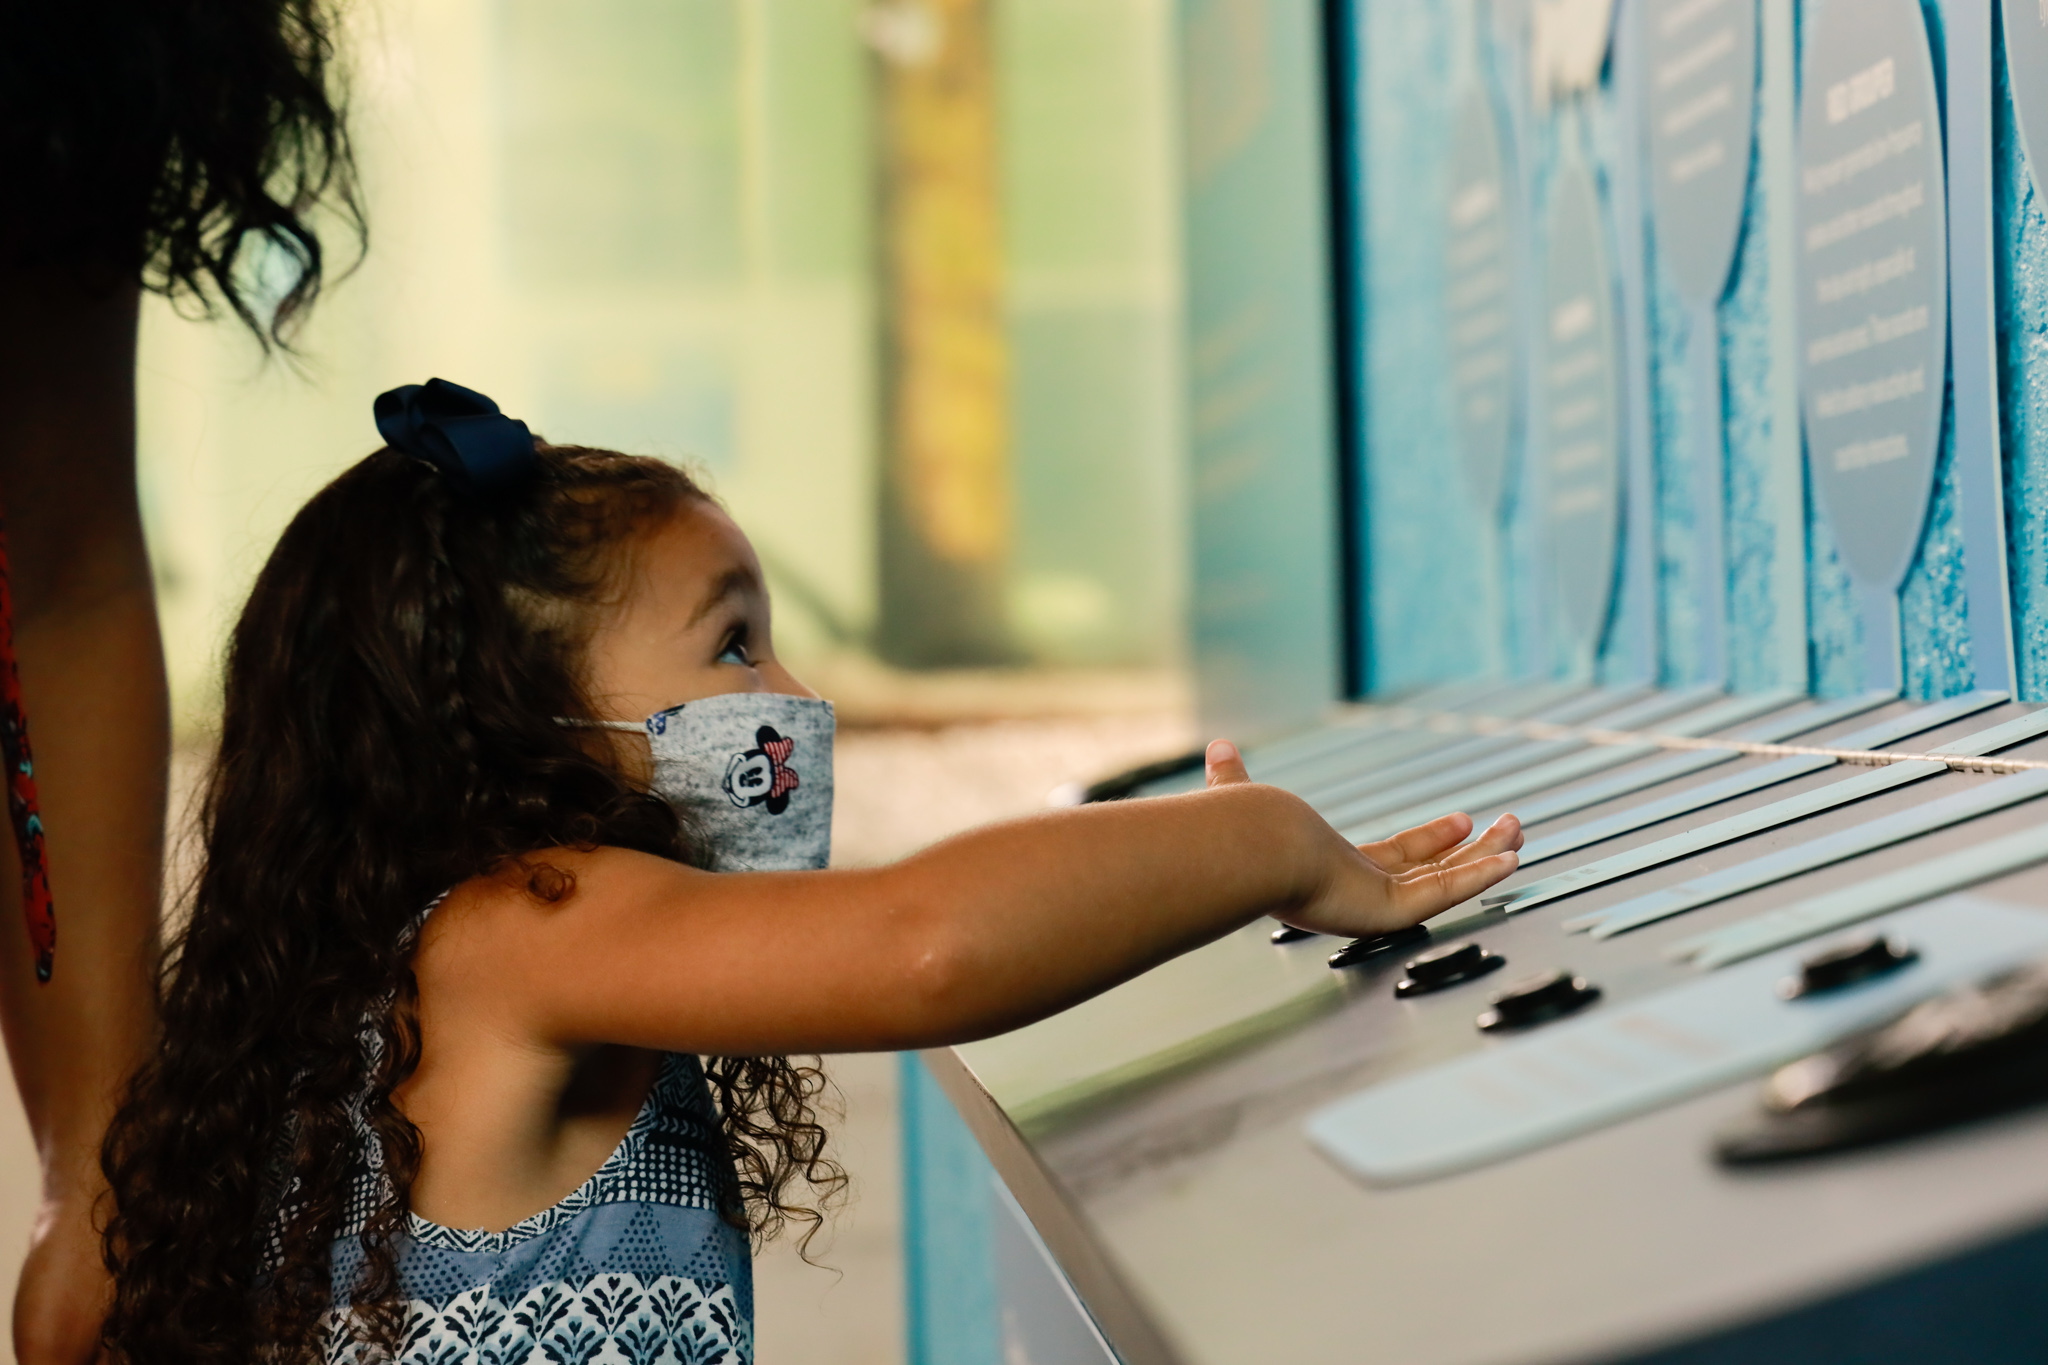 A girl wearing a mask pushes a button on an interactive exhibit at Mote Aquarium